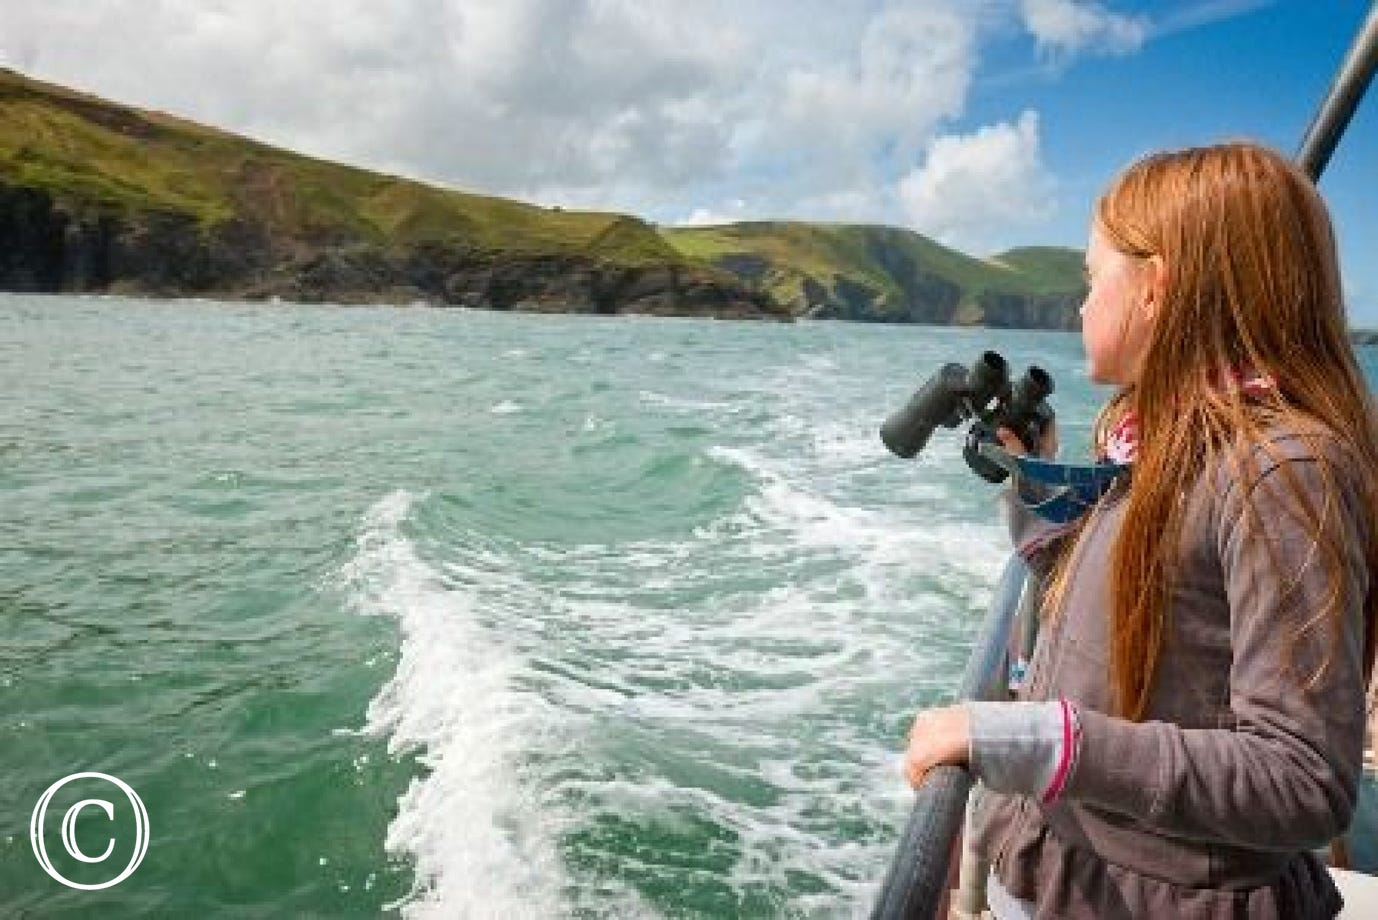 Dolphin watching in nearby Cardigan Bay